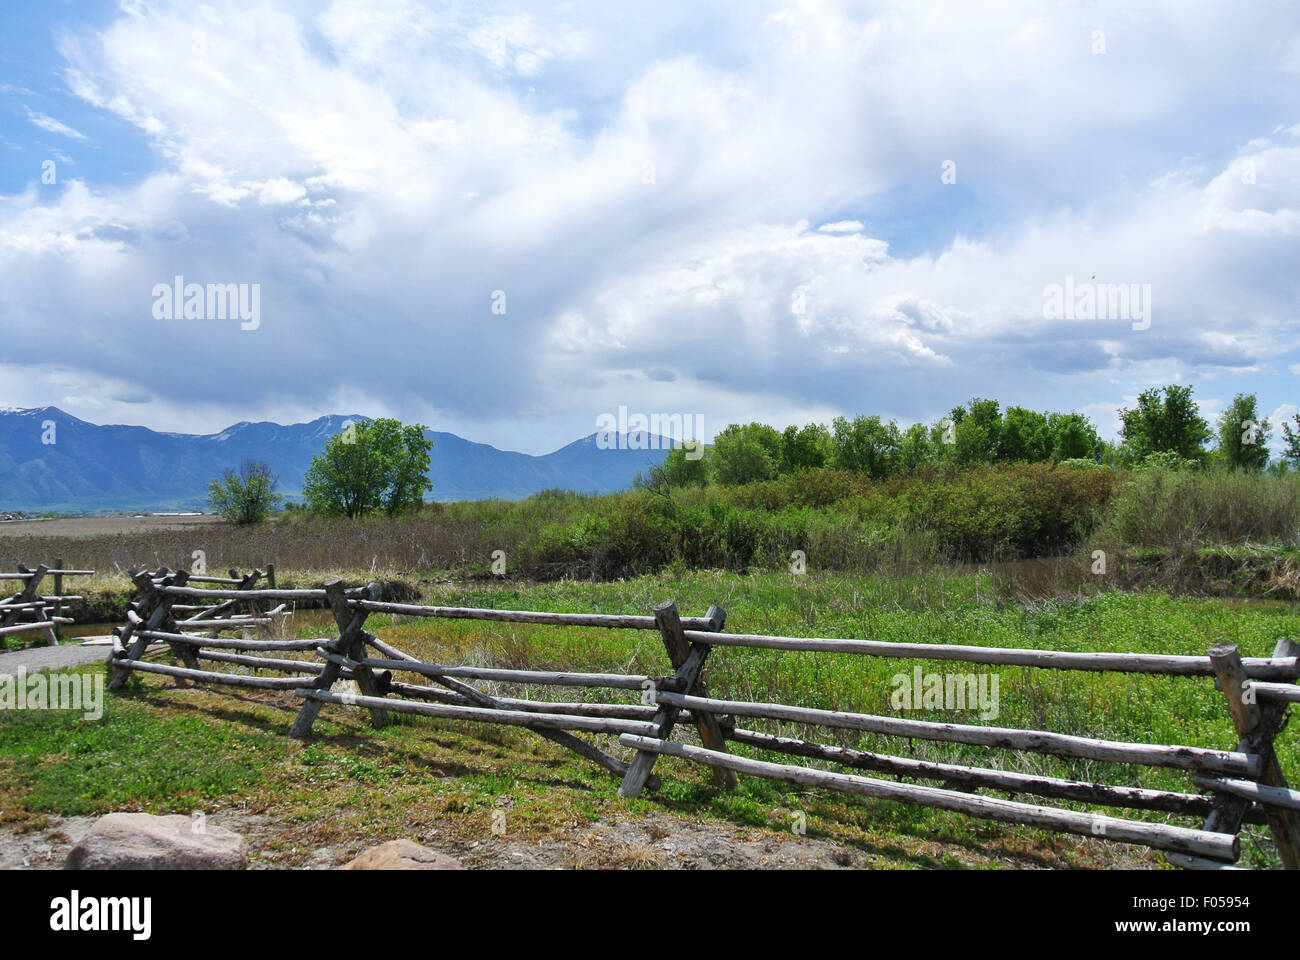 country ranch scene with mountain backdrop stock photo 86168800 alamy